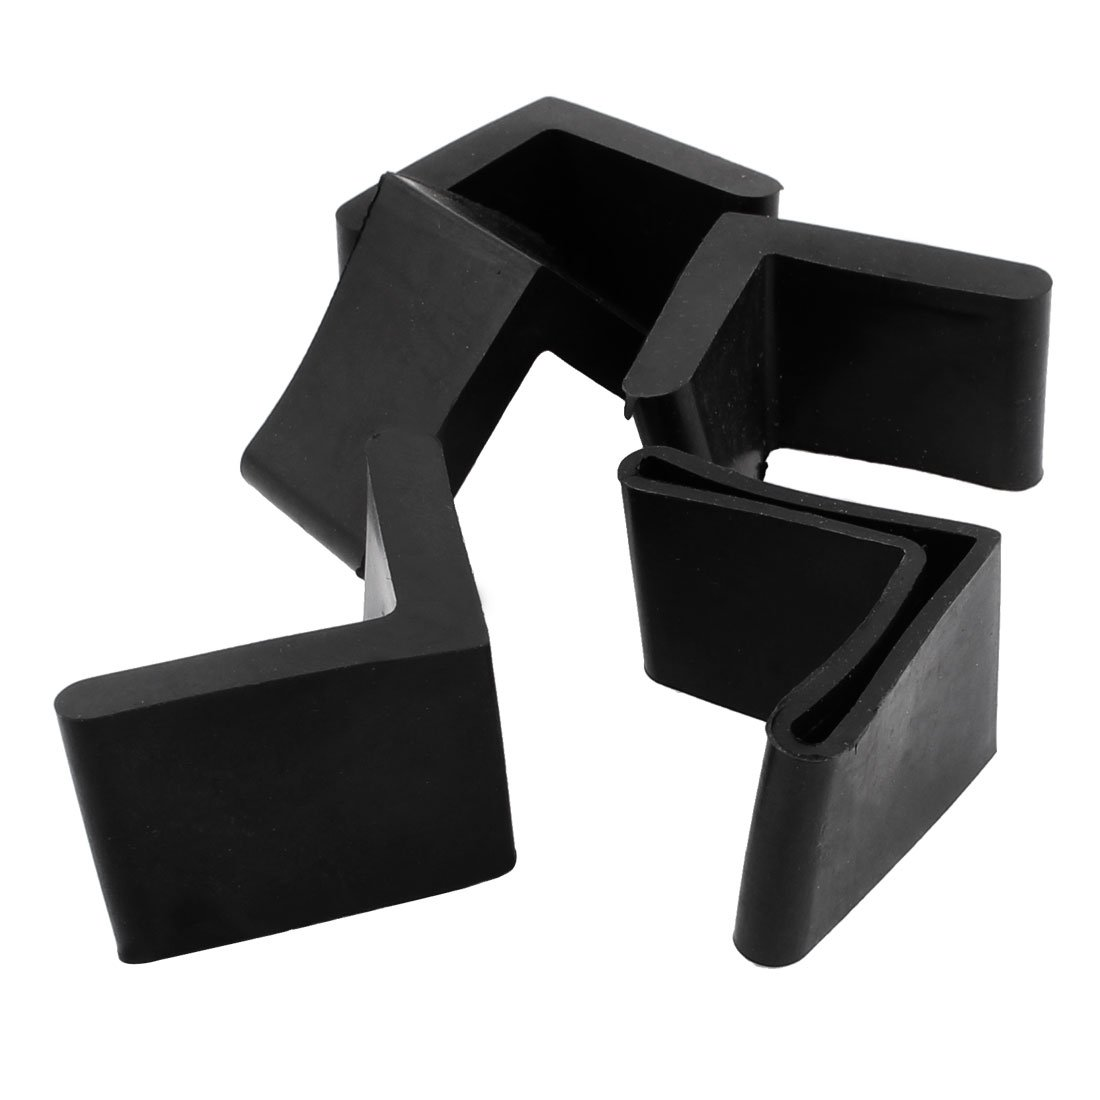 uxcell Rubber L Shaped Angle Iron Leg Foot Cover Cap 40mm x 40mm 5pcs Black a16022200ux0137